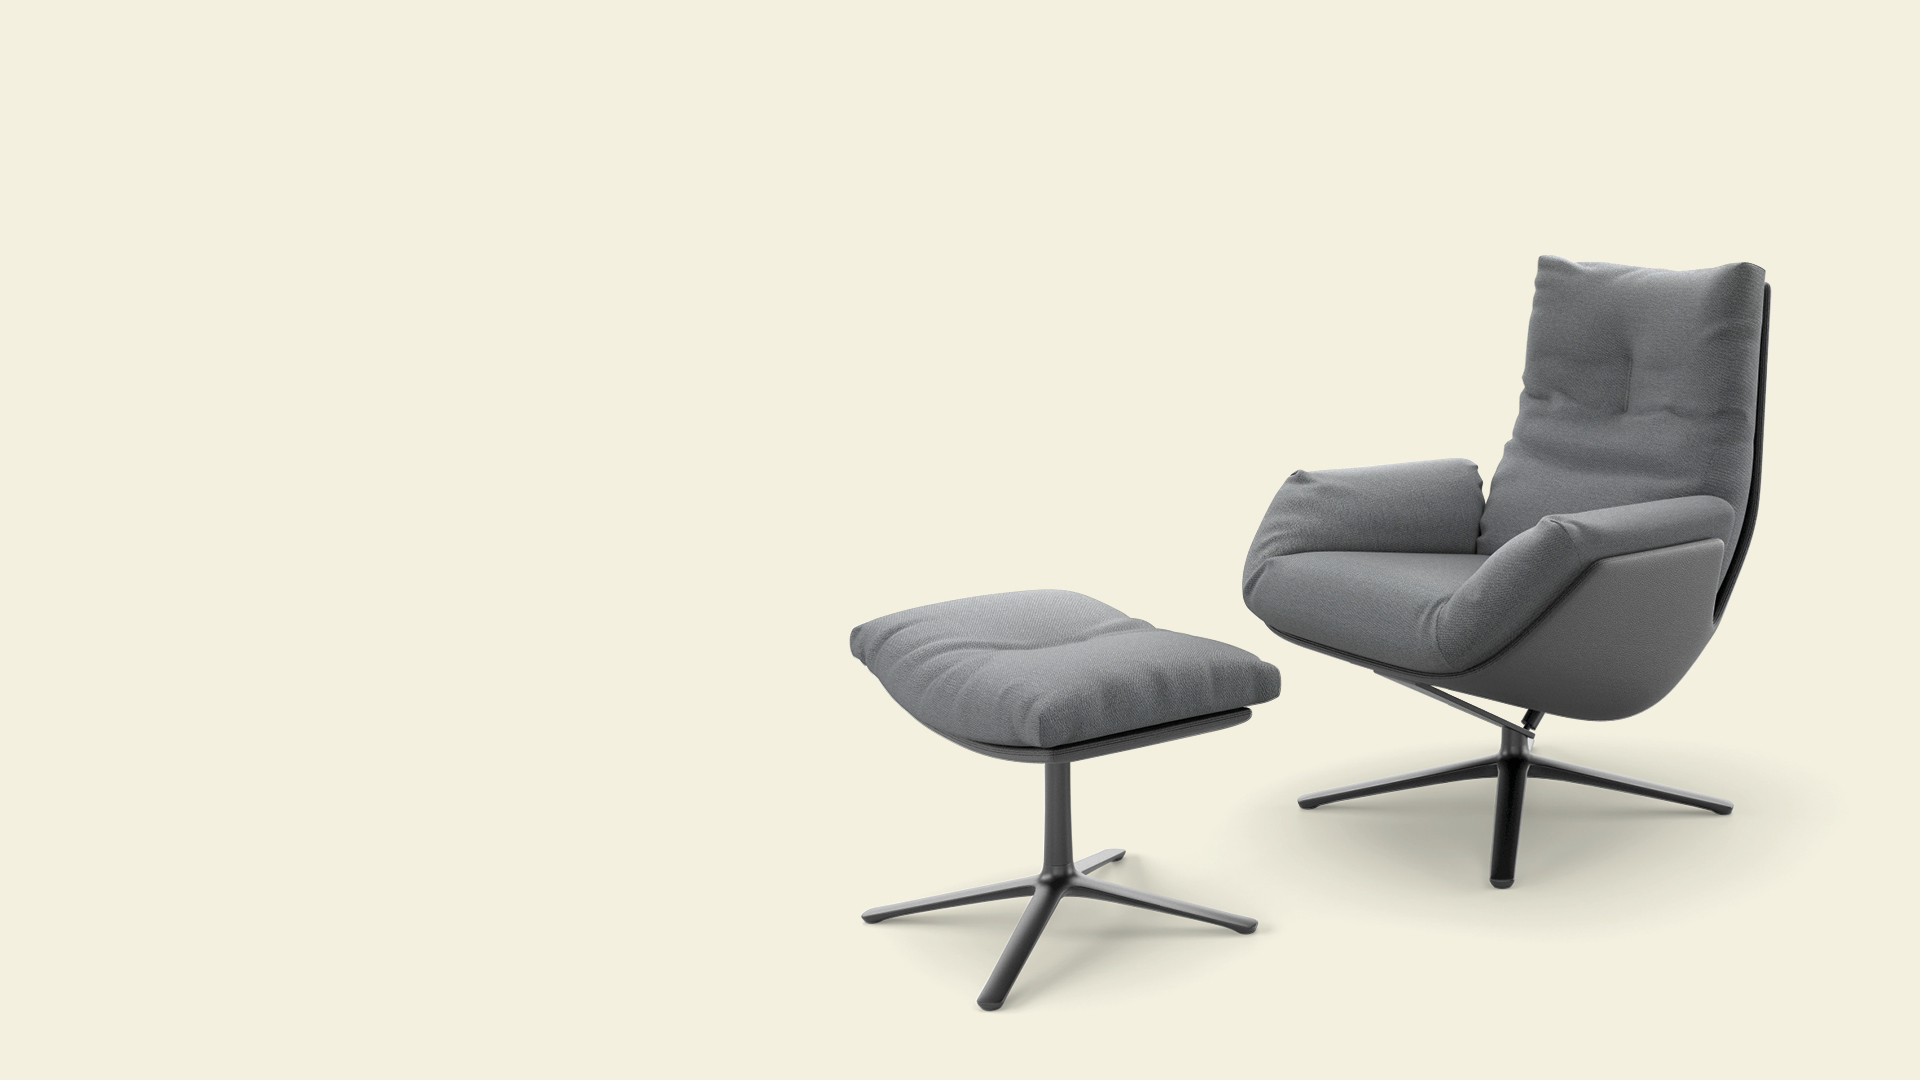 COR Smart Lounge Sessel und Hocker Cordia Lounge